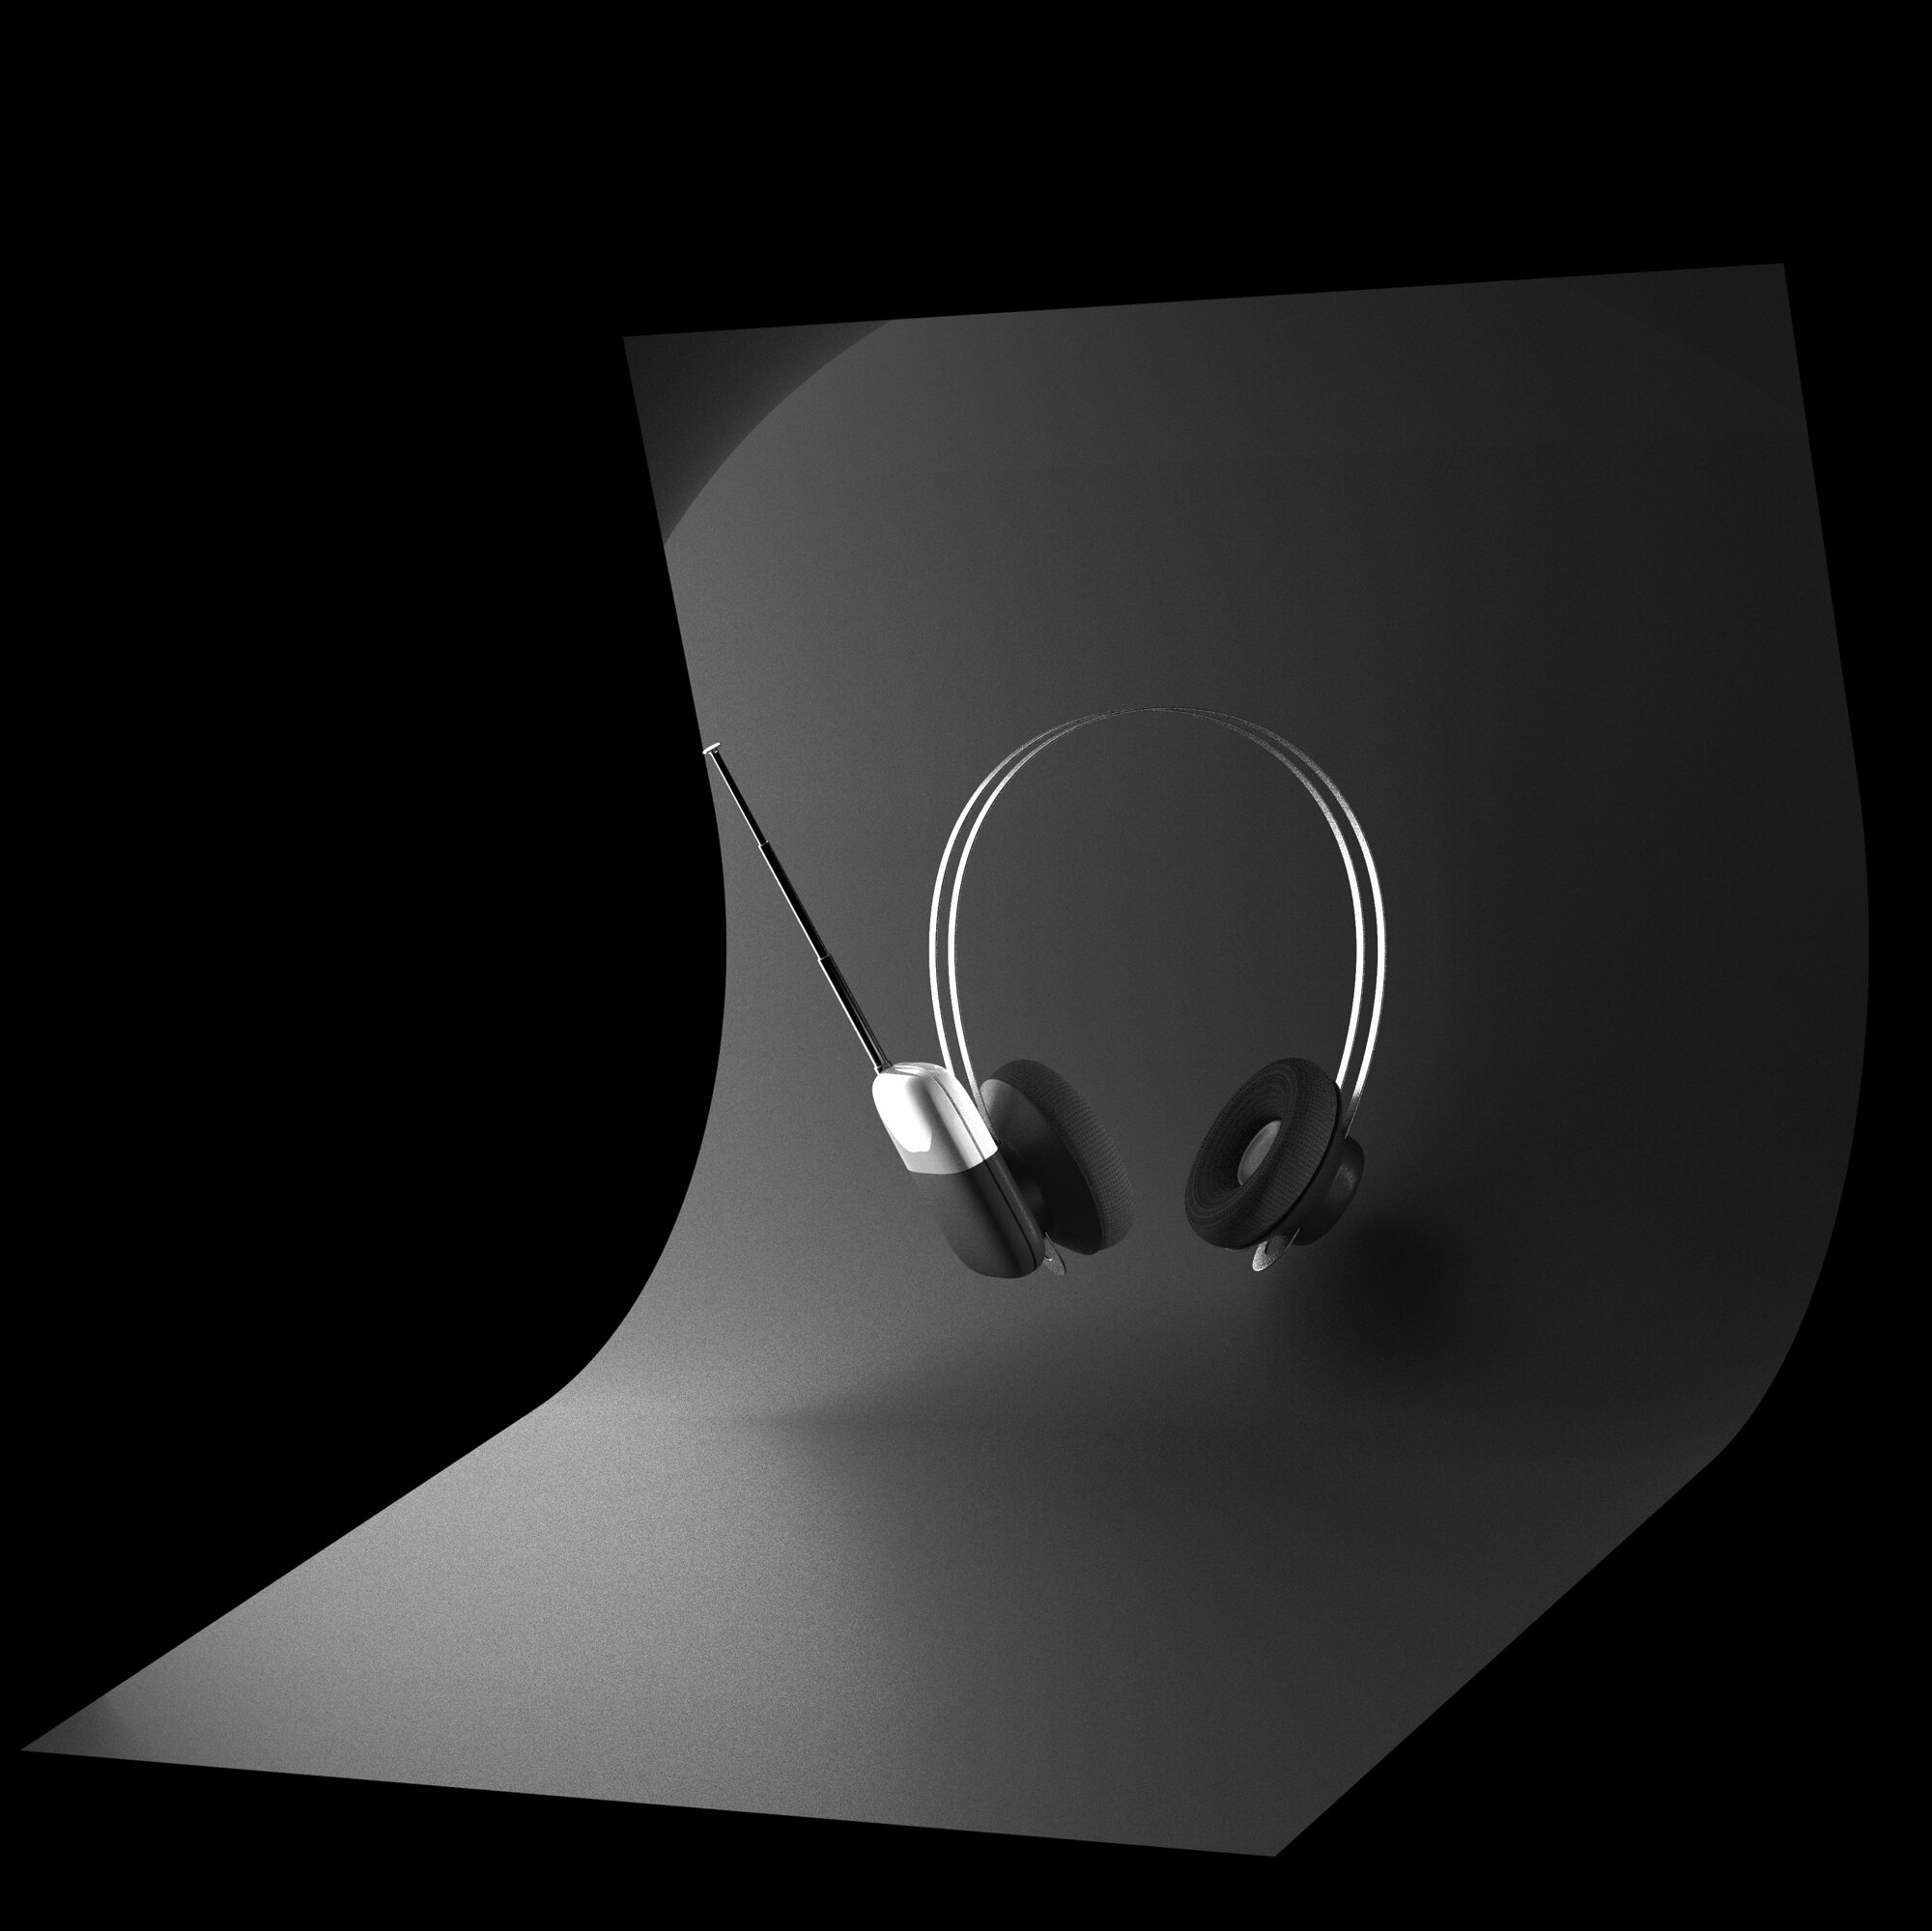 headphones-set.jpg